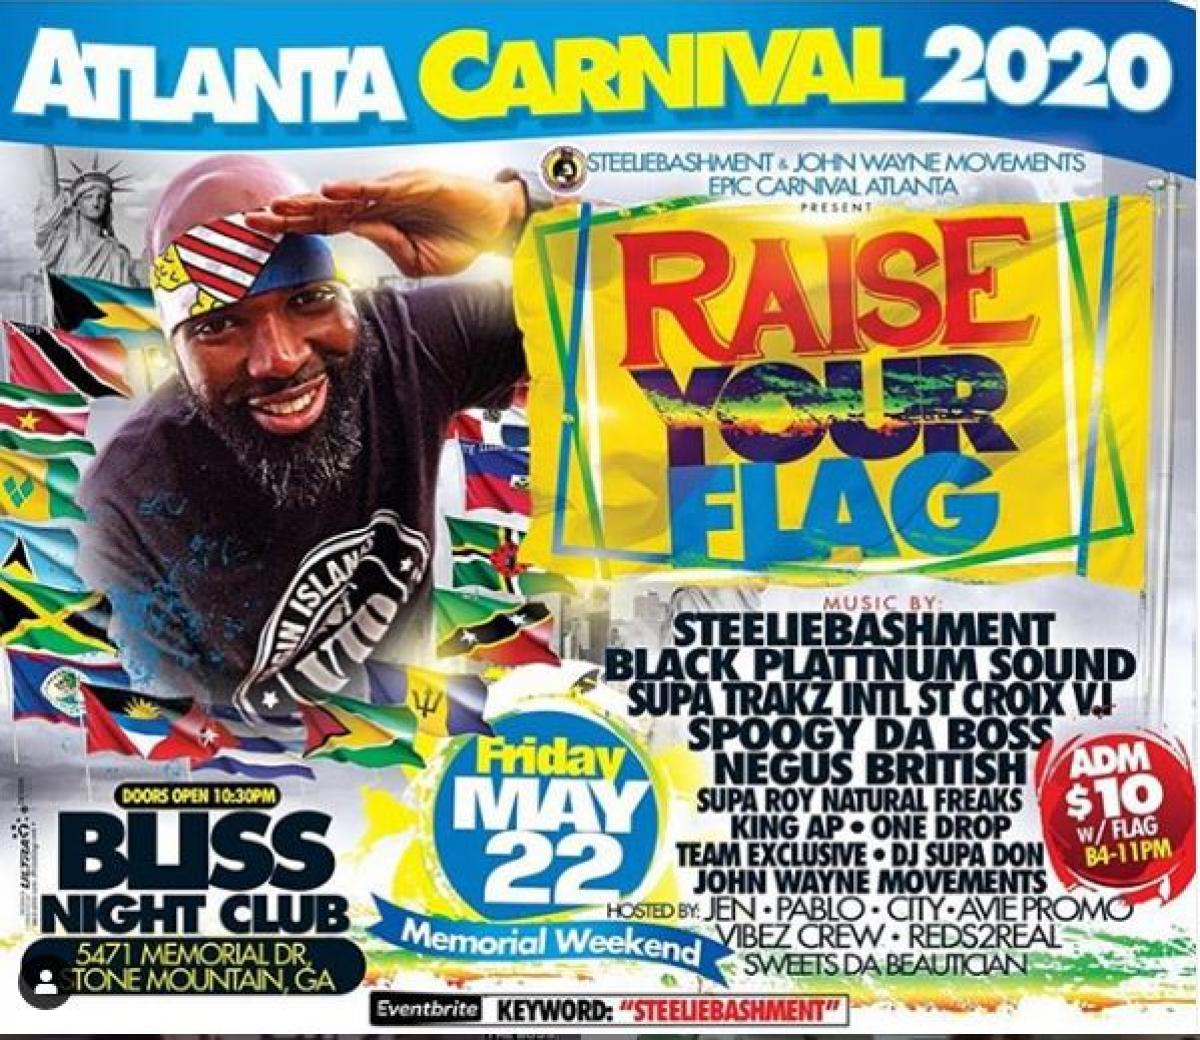 Raise Your Flag flyer or graphic.